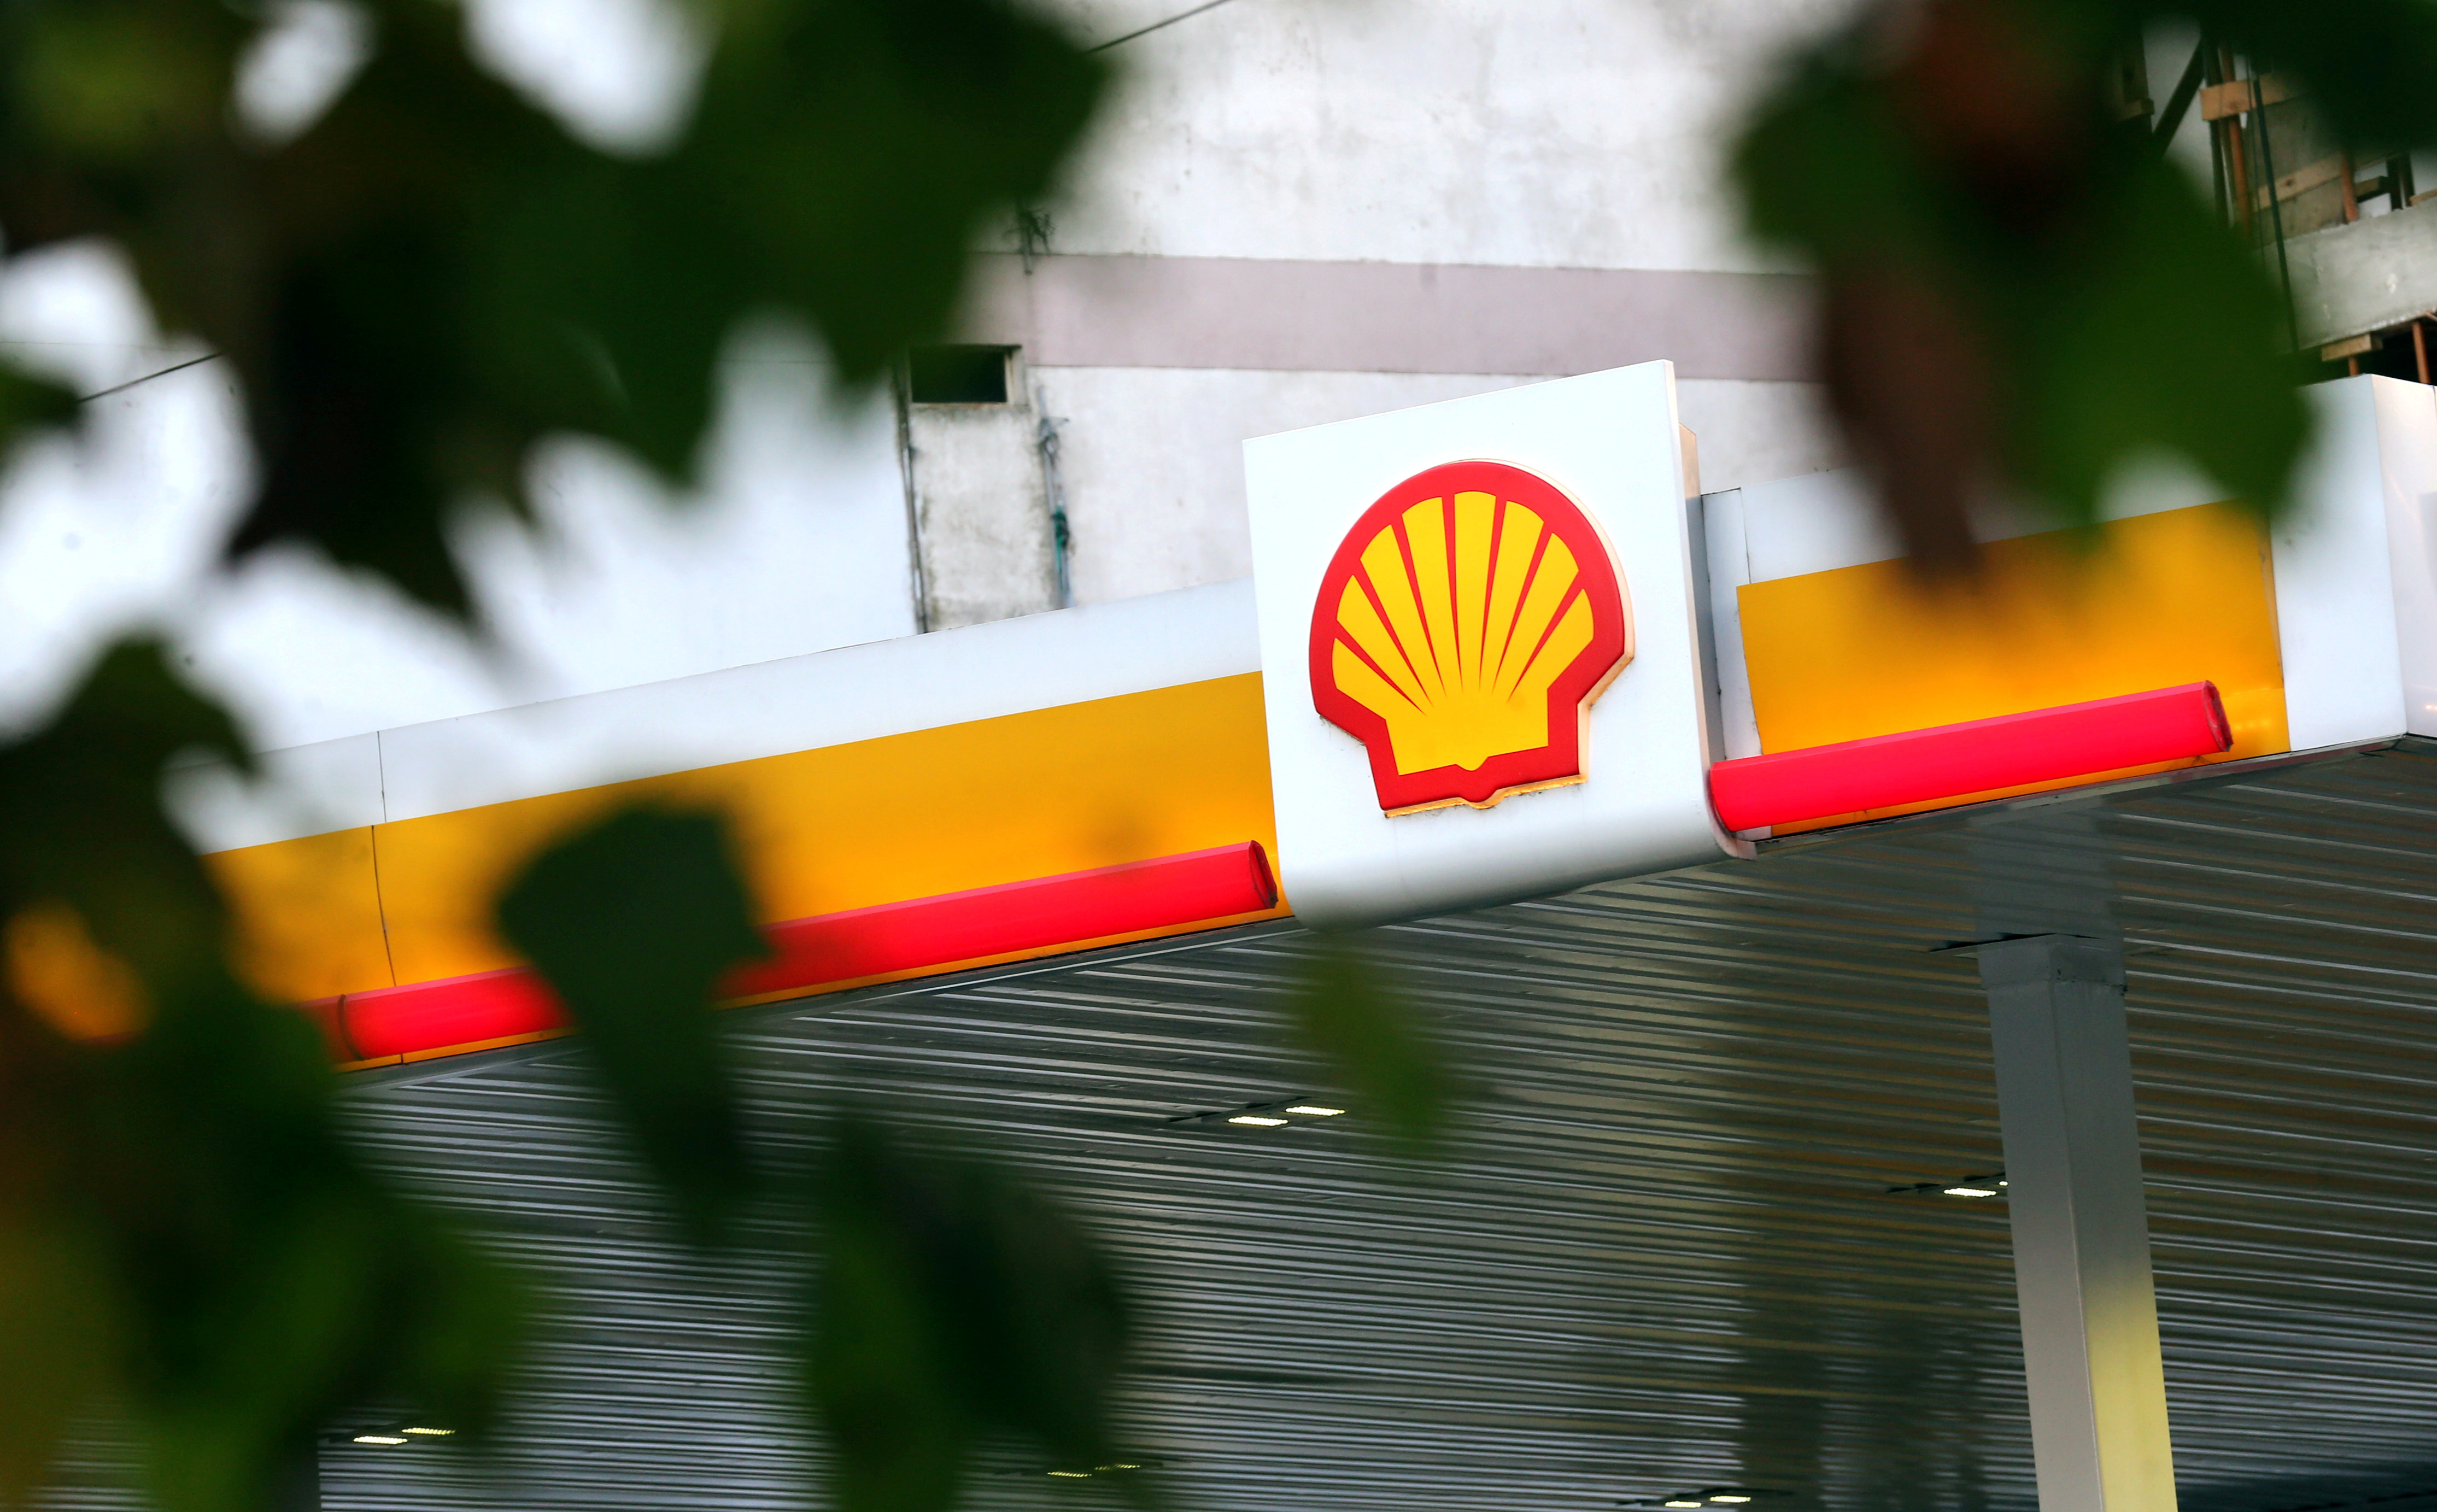 A Shell logo is seen at a gas station in Buenos Aires, Argentina, March 12, 2018. REUTERS/Marcos Brindicci